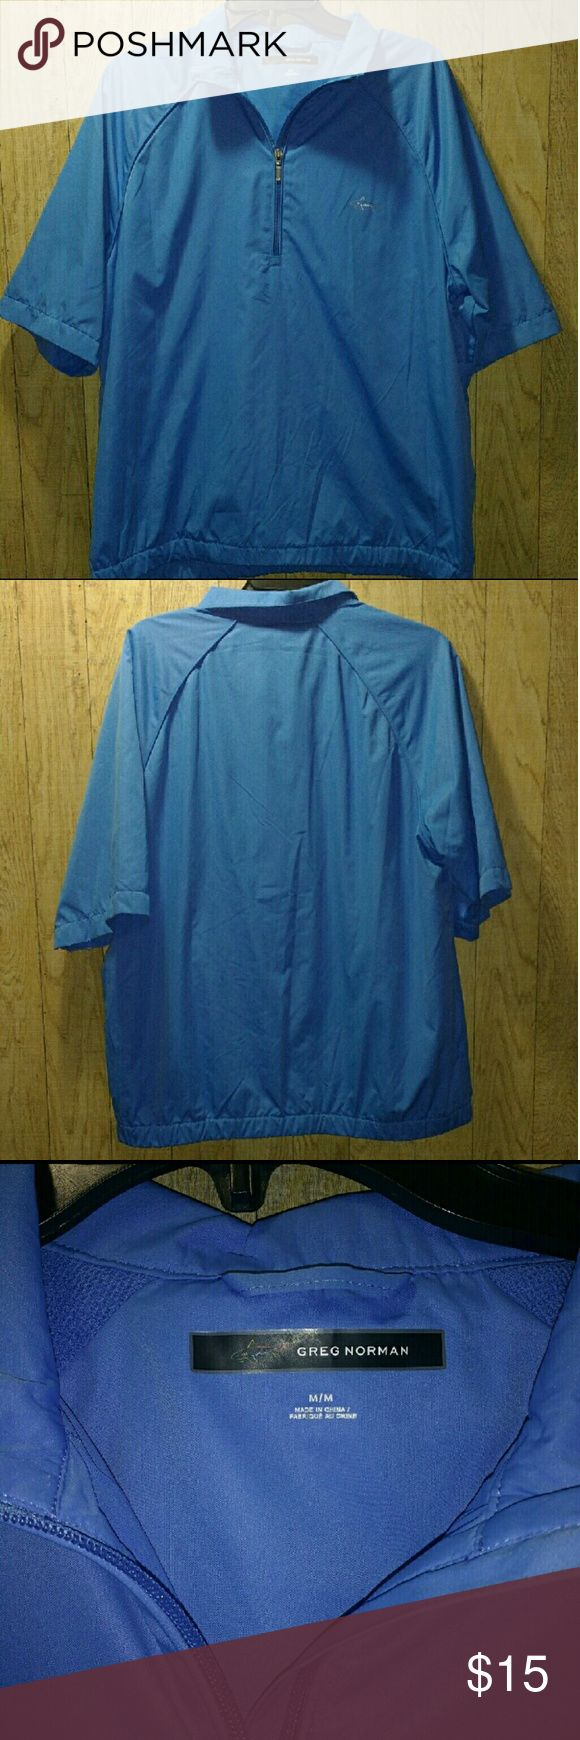 Weather Essentials Pullover Jacket Greg Norman Weather Essentials Pullover Jacket  This quarter-zip jacket adds water resistance and wind protection in a great-looking lightweight layer. Features the iconic Greg Norman shark logo on the chest.  Size Medium  Weather Essentials Short Sleeve Quarter Zip Pullover Jacket Jackets & Coats